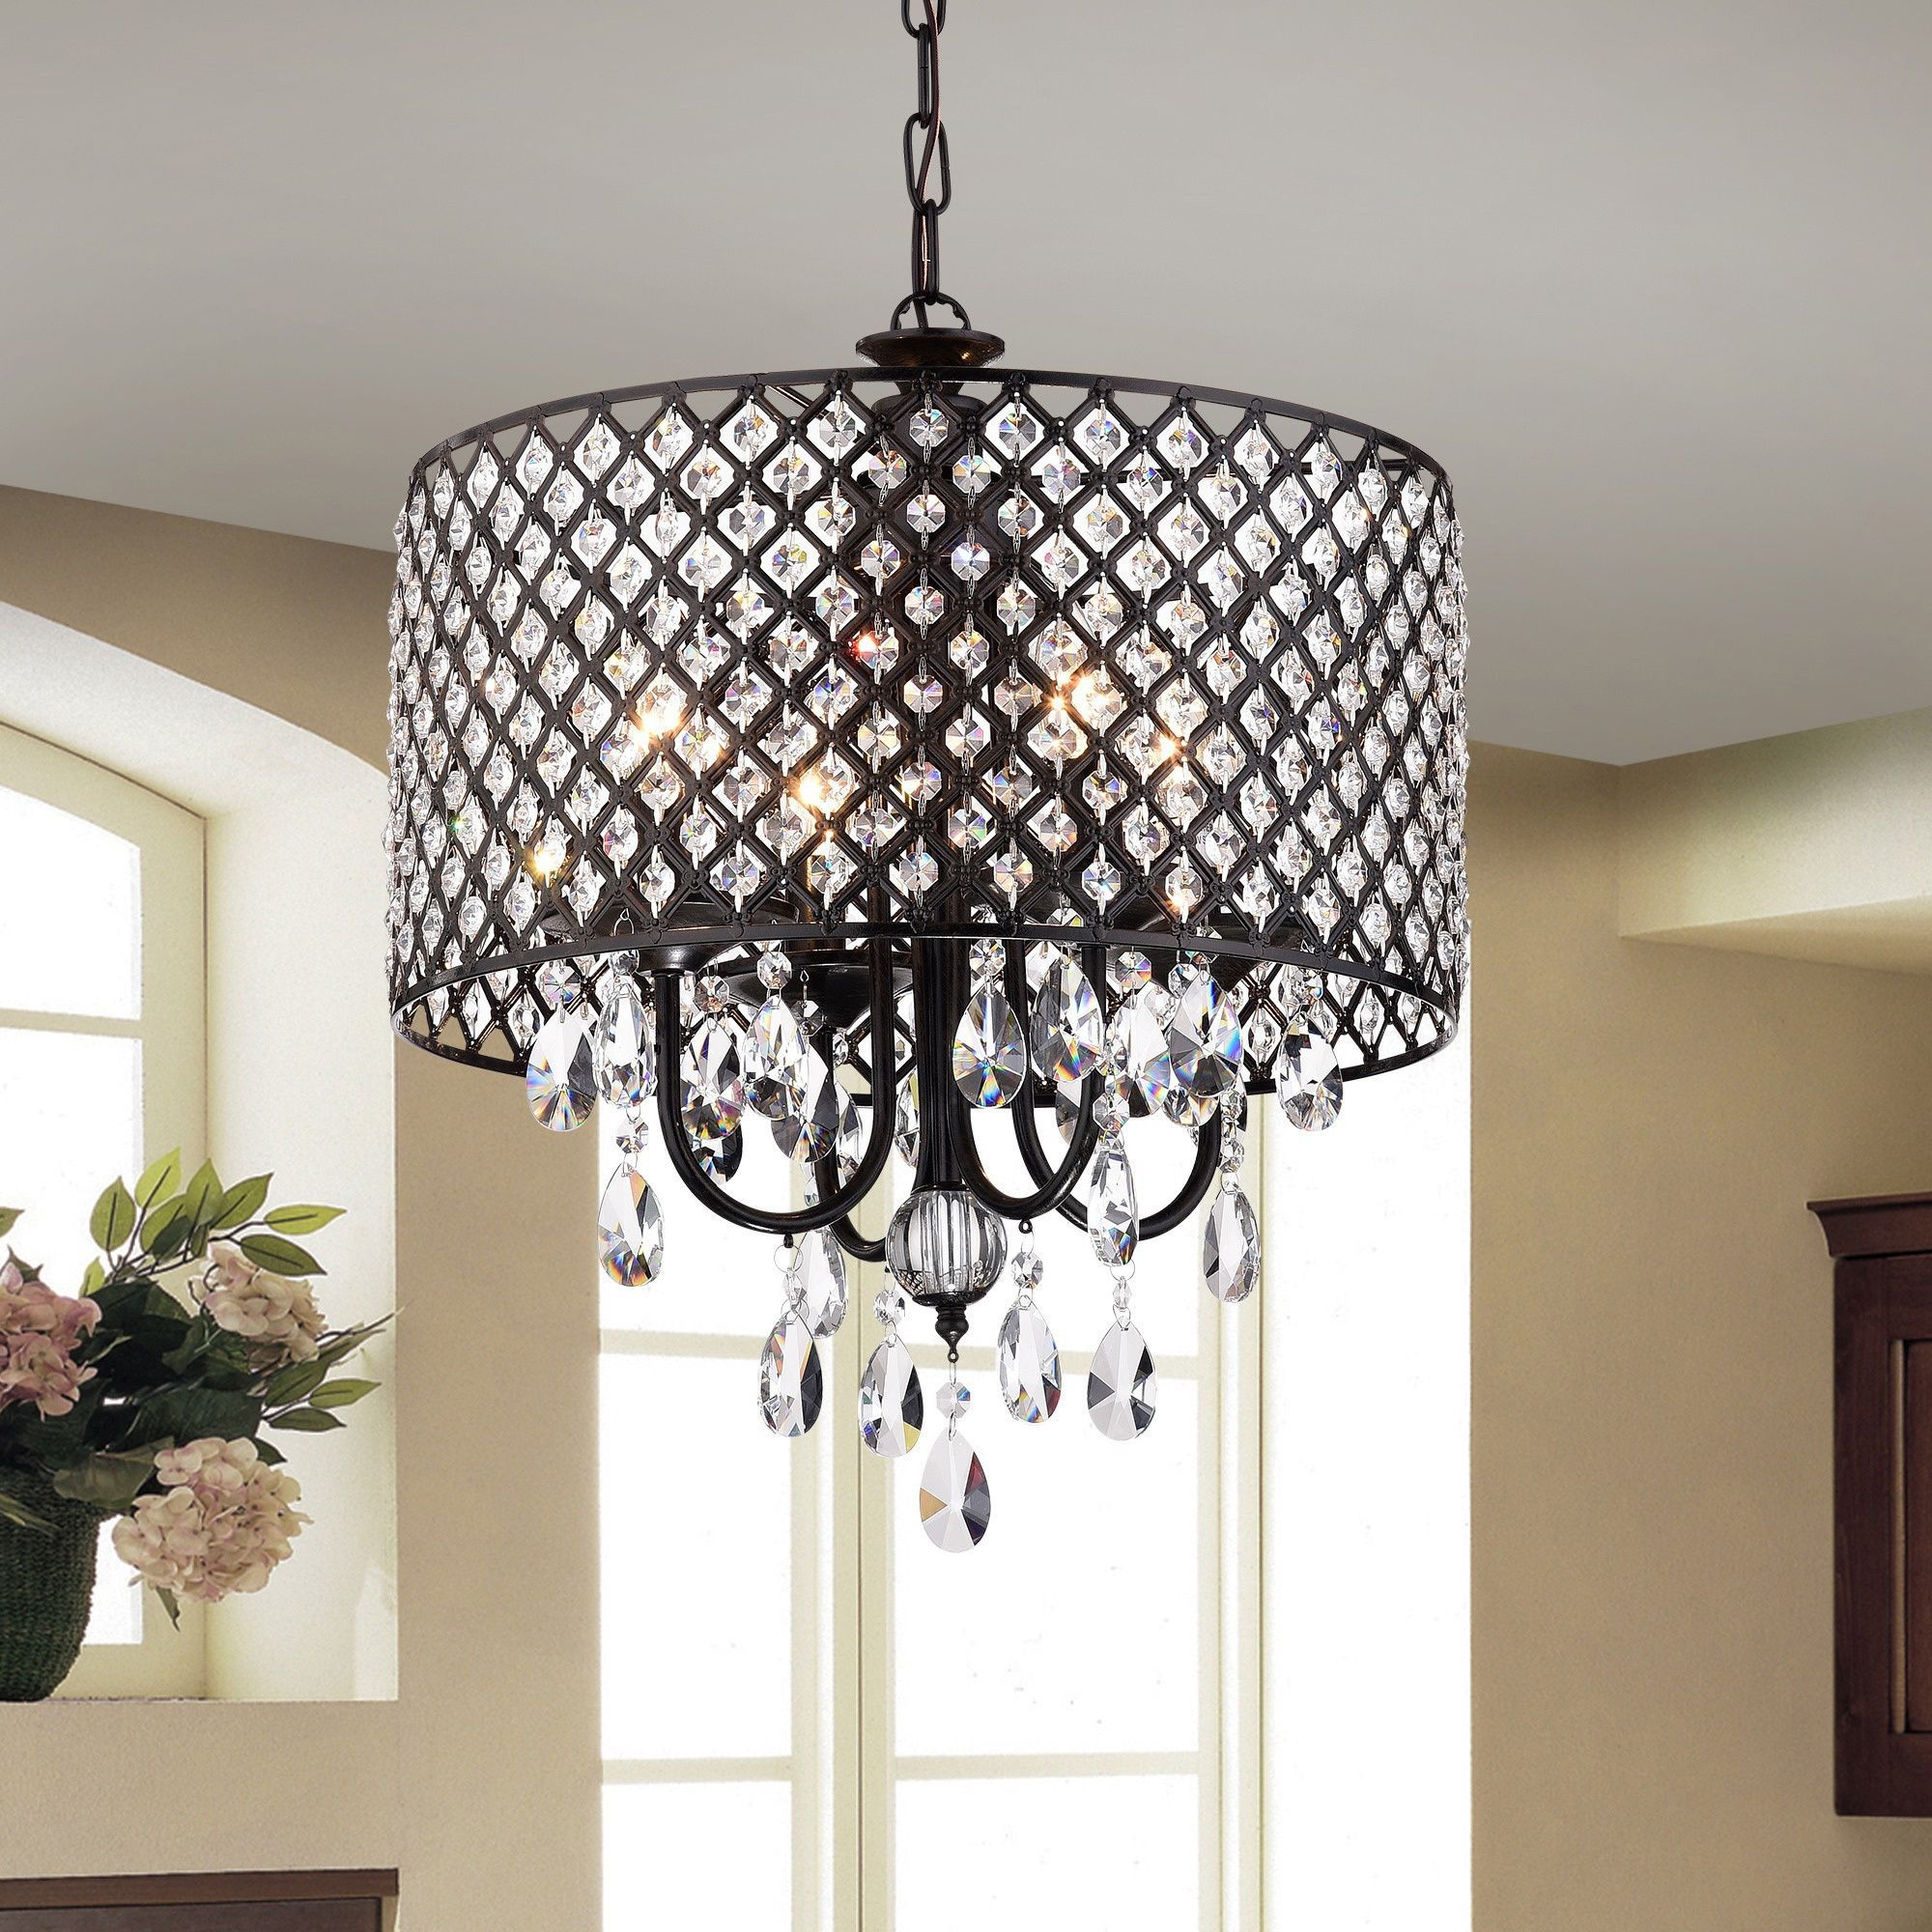 Monet 4 Lights Black Finished 17 Inch Crystal Round Within Albano 4 Light Crystal Chandeliers (Image 22 of 30)